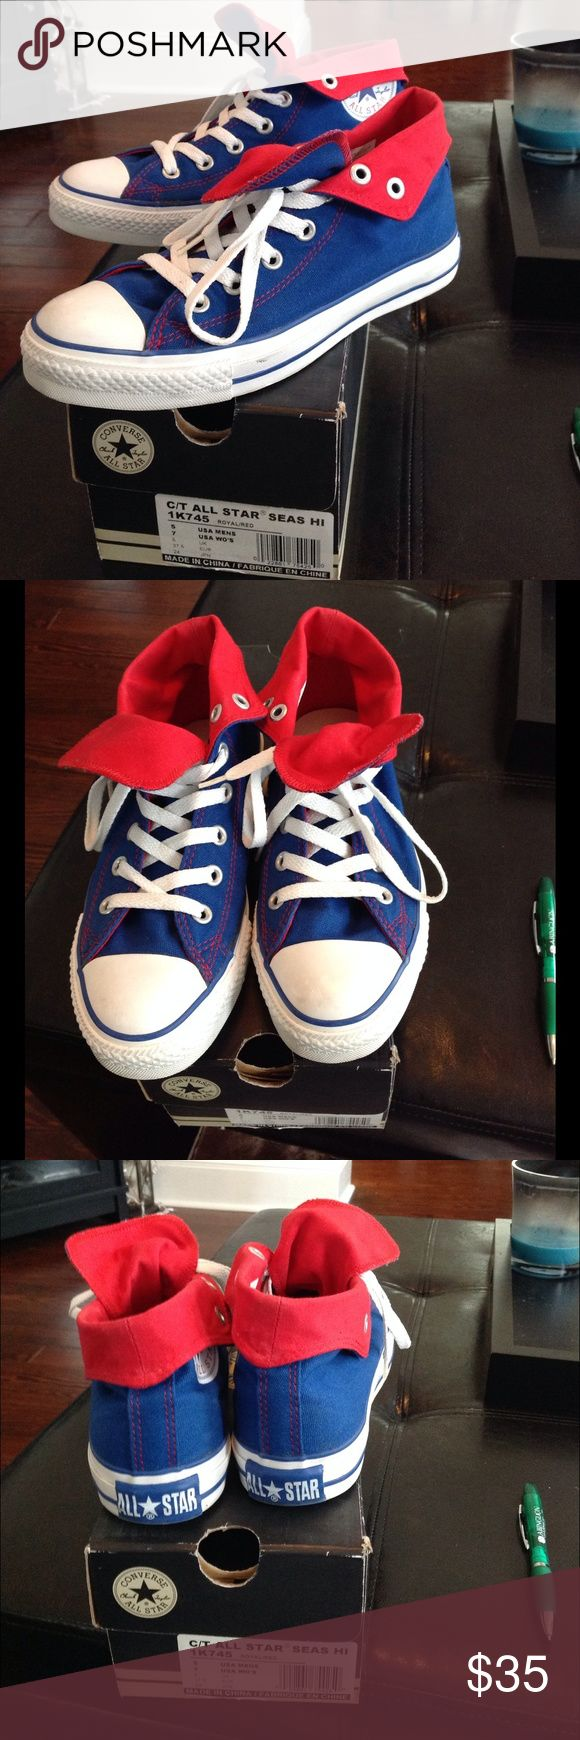 Royal, red and white Chuck Taylors Perfect for upcoming Summer season. Comfy high top Chucks, can be rolled down to show red. One scuff pictured in first pic and scuff one toe pictured on second pic. Converse Shoes Sneakers